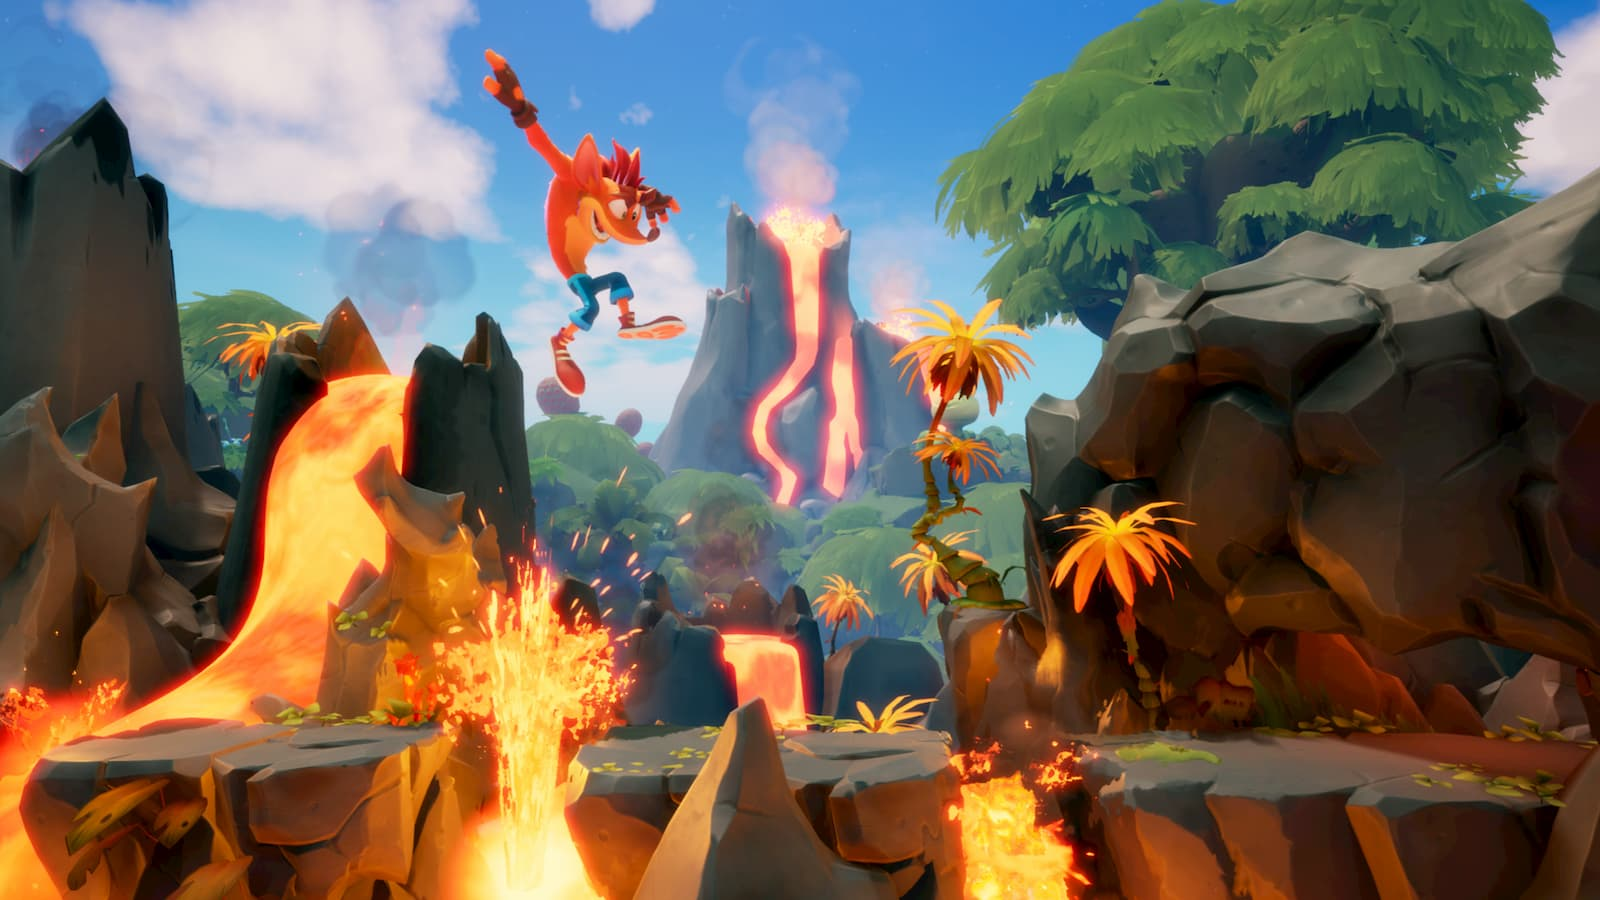 Crash Bandicoot 4' pretends the PS2-era games never happened | Engadget